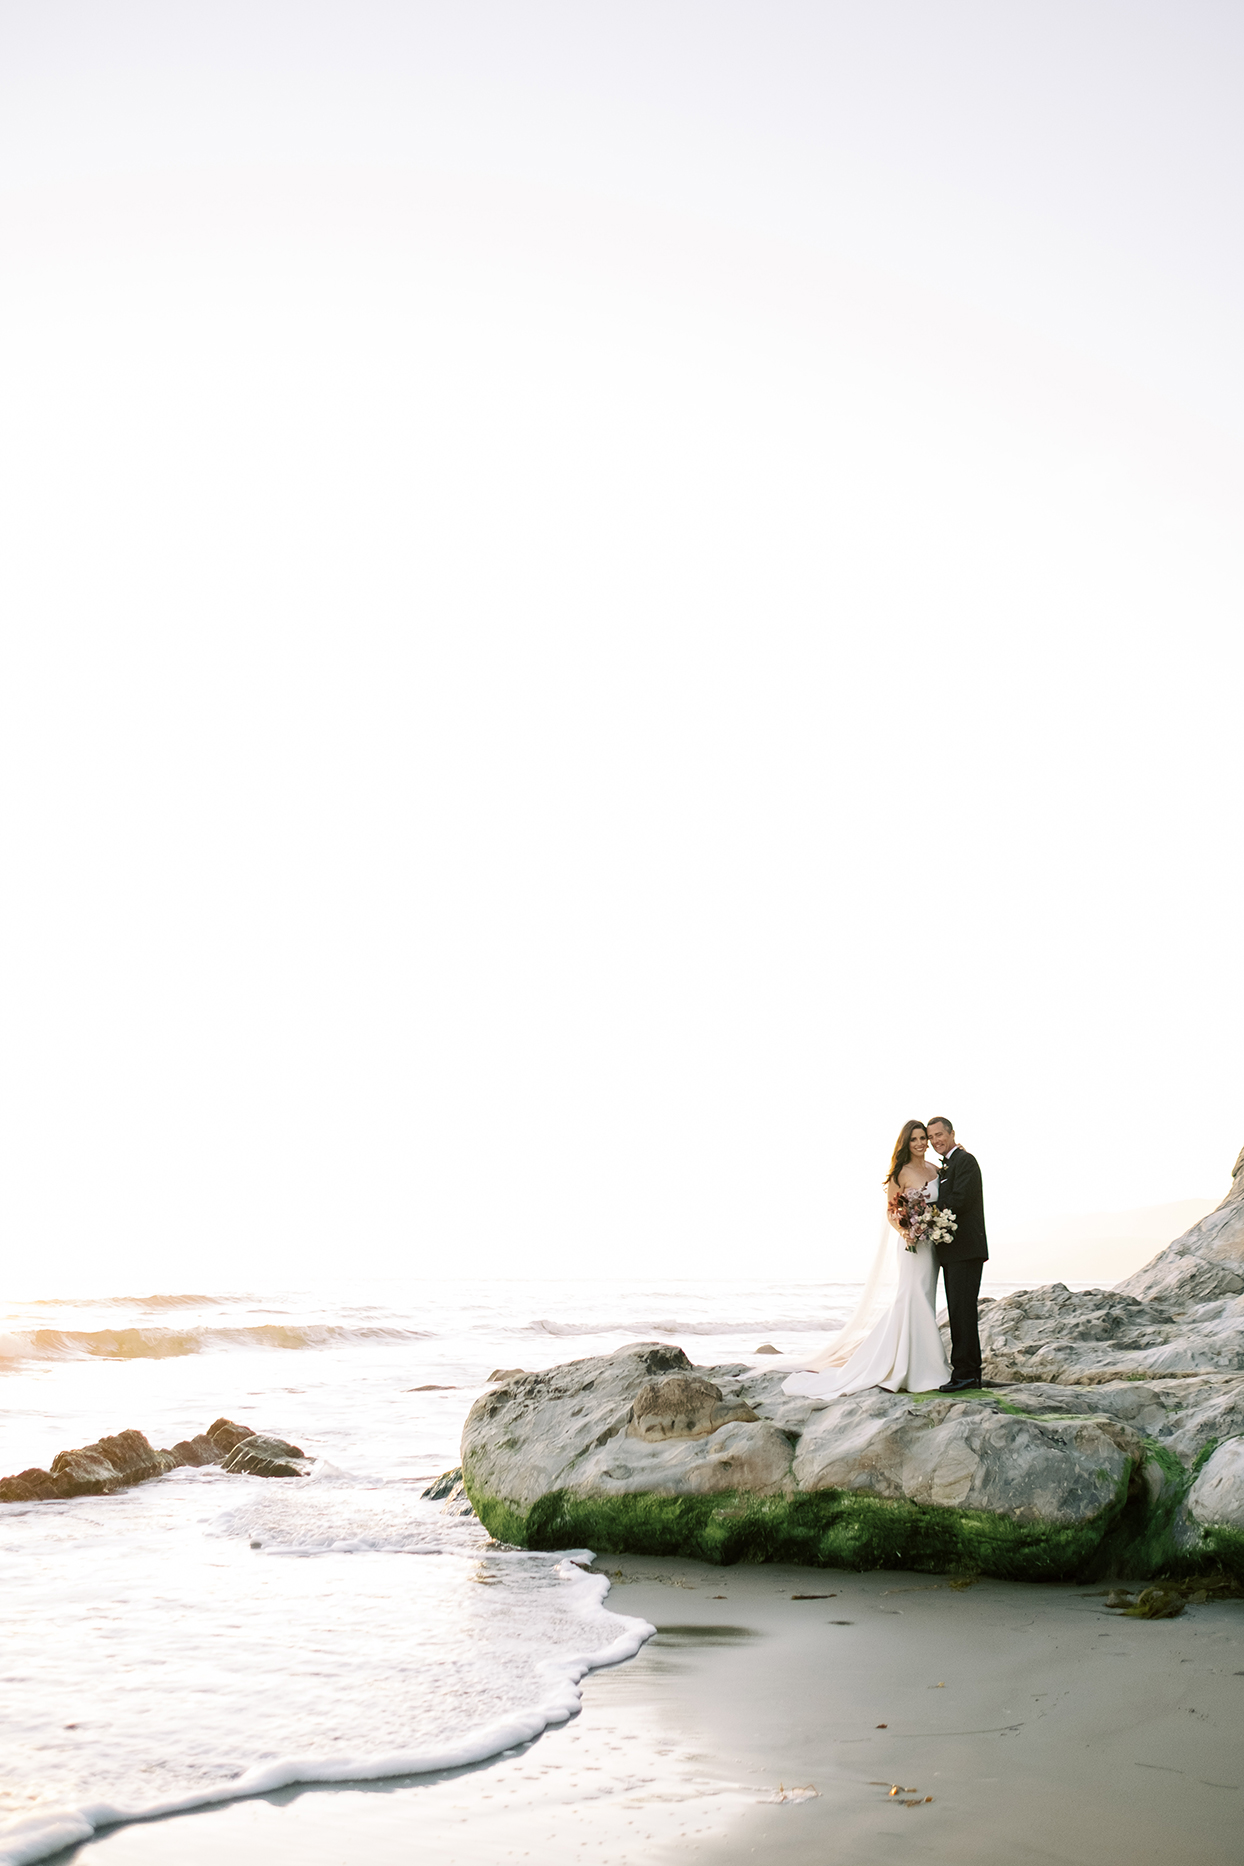 wedding couple posing for portraits on rock at the beach